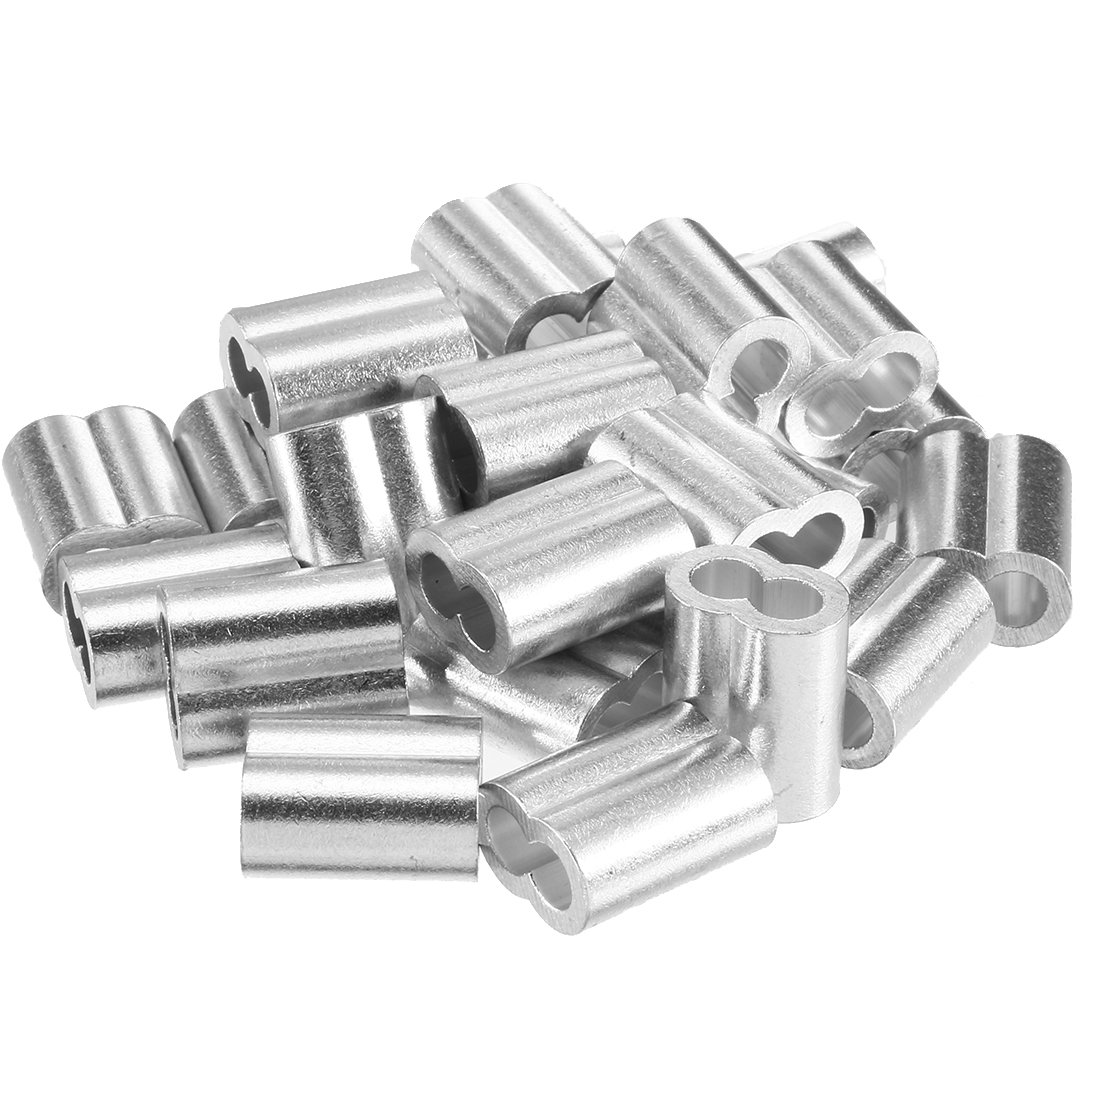 Uxcell a15060500ux0003 1mm Wire Rope Aluminum Sleeves Clip Fittings Cable Crimps 100pcs (Pack of 100)